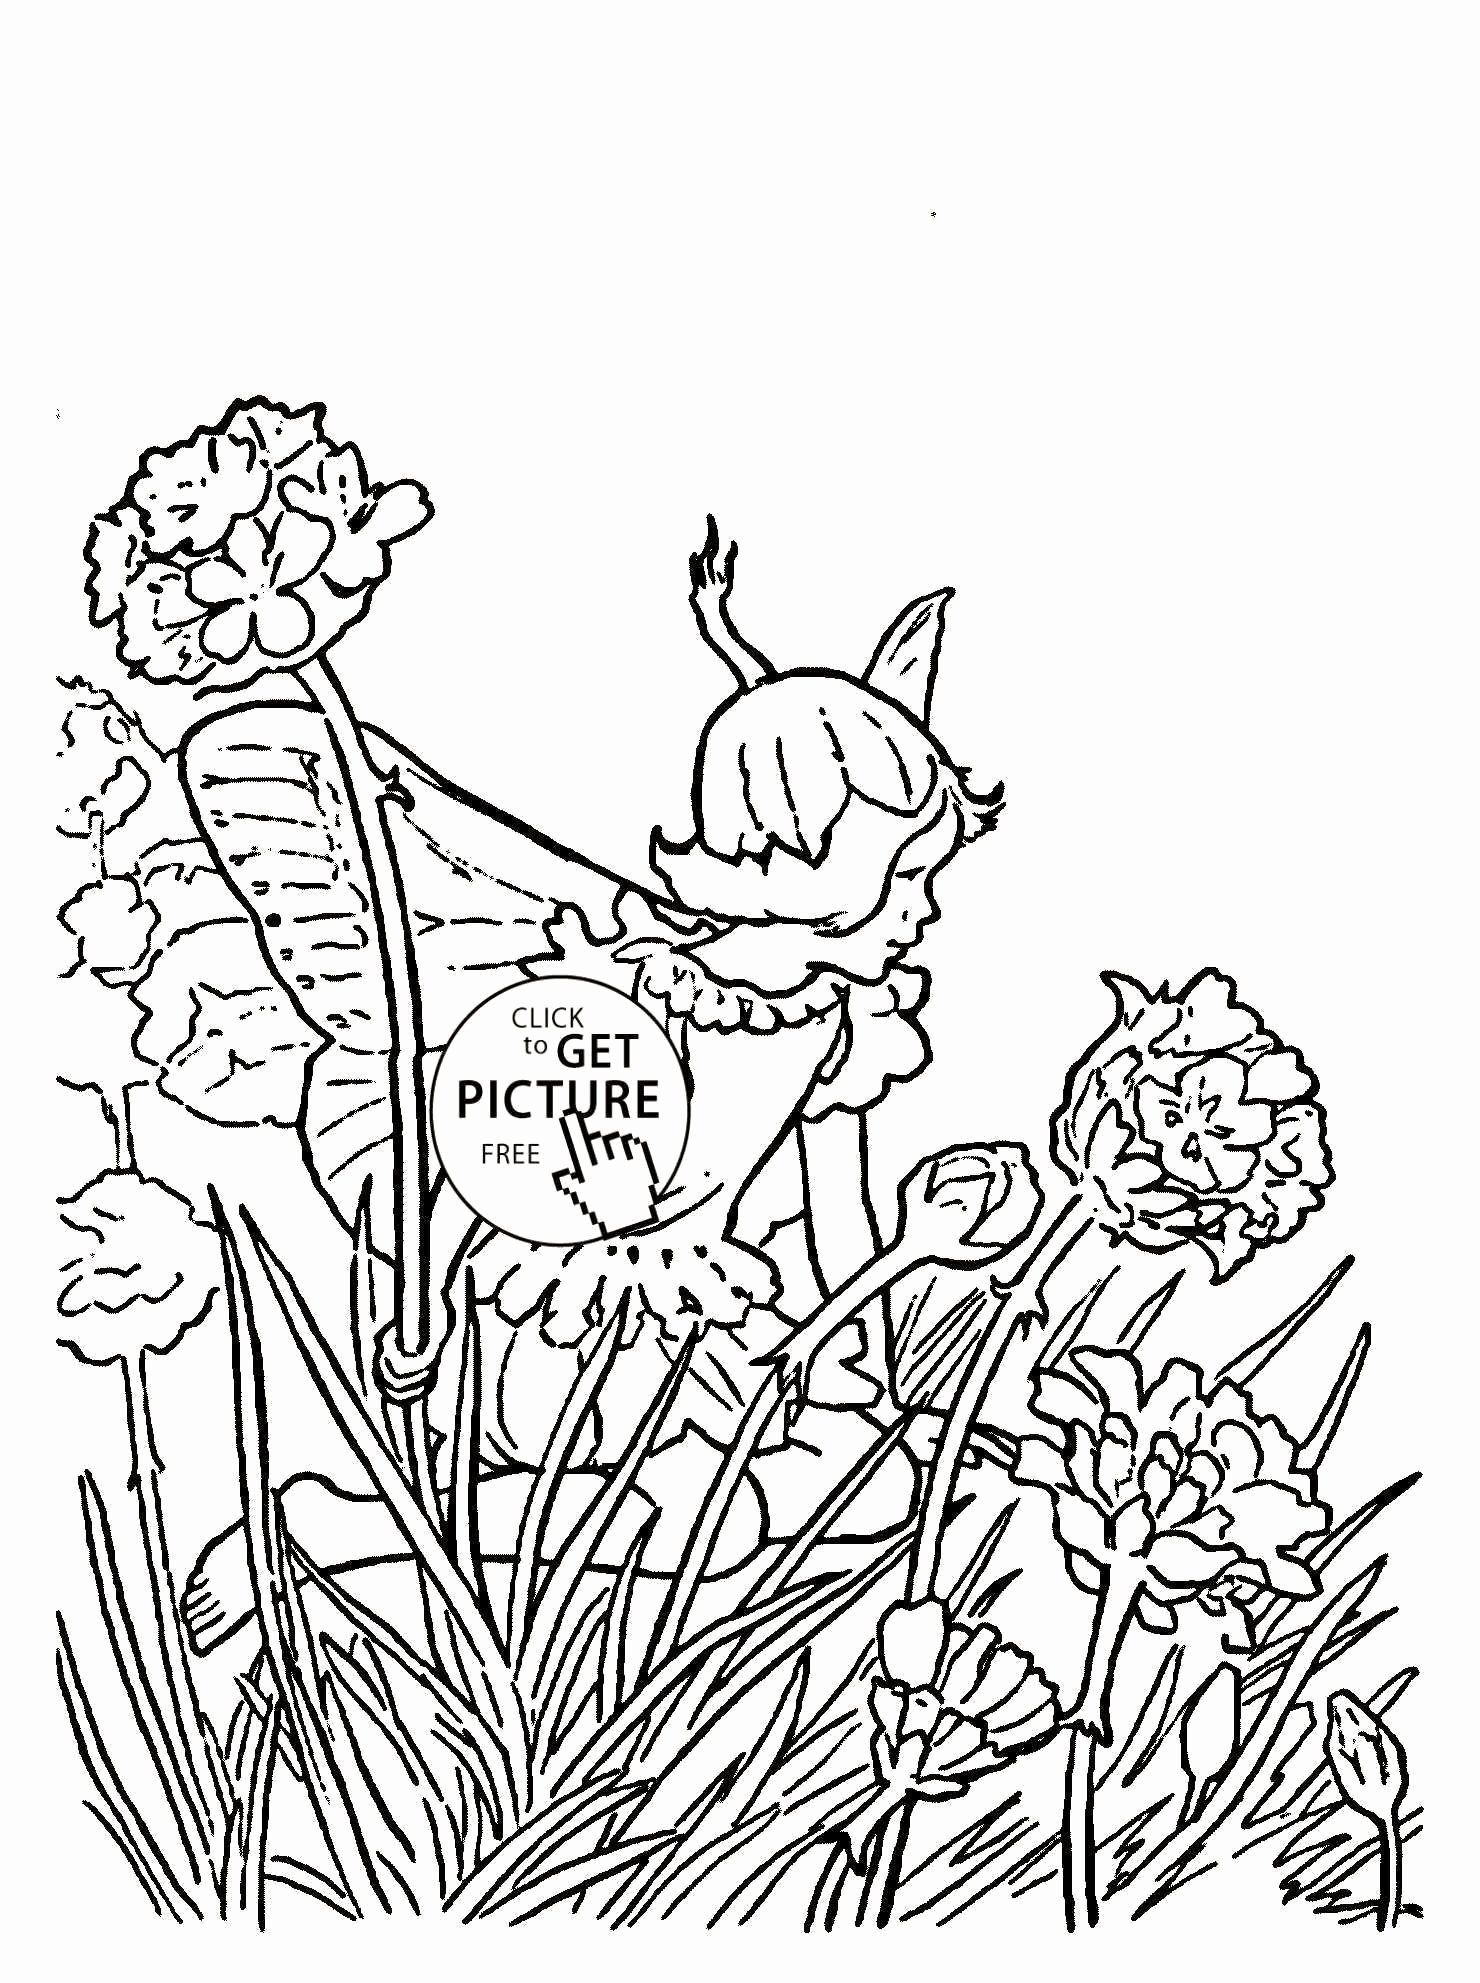 Coloring Book Jungle Animals New Coloring Pages Coloring Book Program Dog Sheets Printable Christmas Coloring Pages Animal Coloring Pages Fairy Coloring Pages